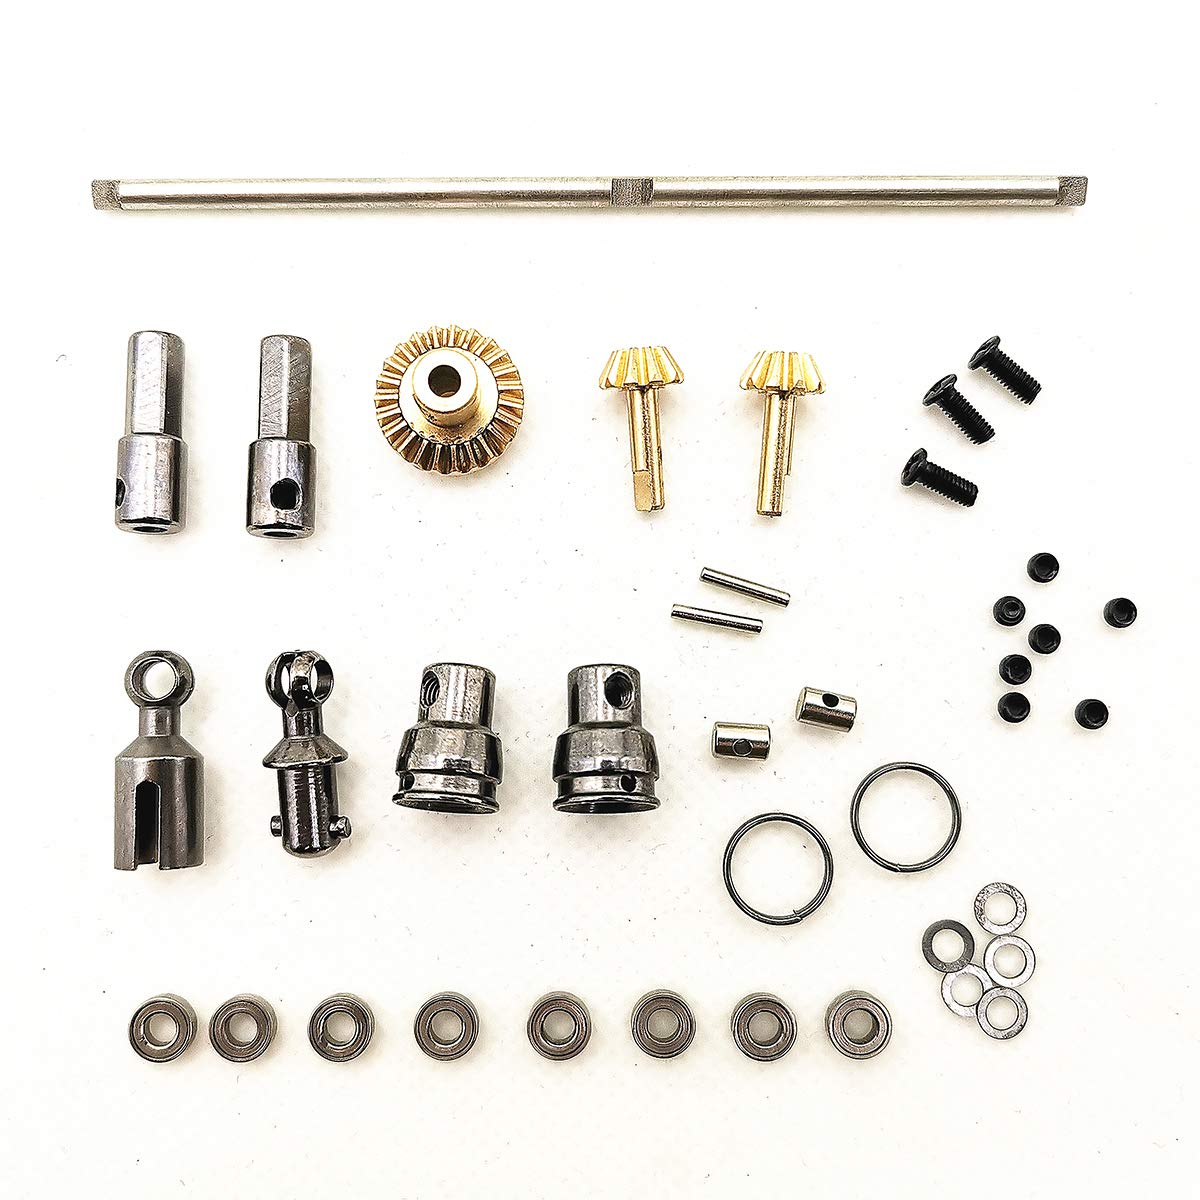 Small Metal Op Parts Rabusion Upgrade Metal OP Accessories Toy for 1 16 WPL B14 B16 B24 C14 C24 B36 RC Car Sixwheel drive OP + drive shaft